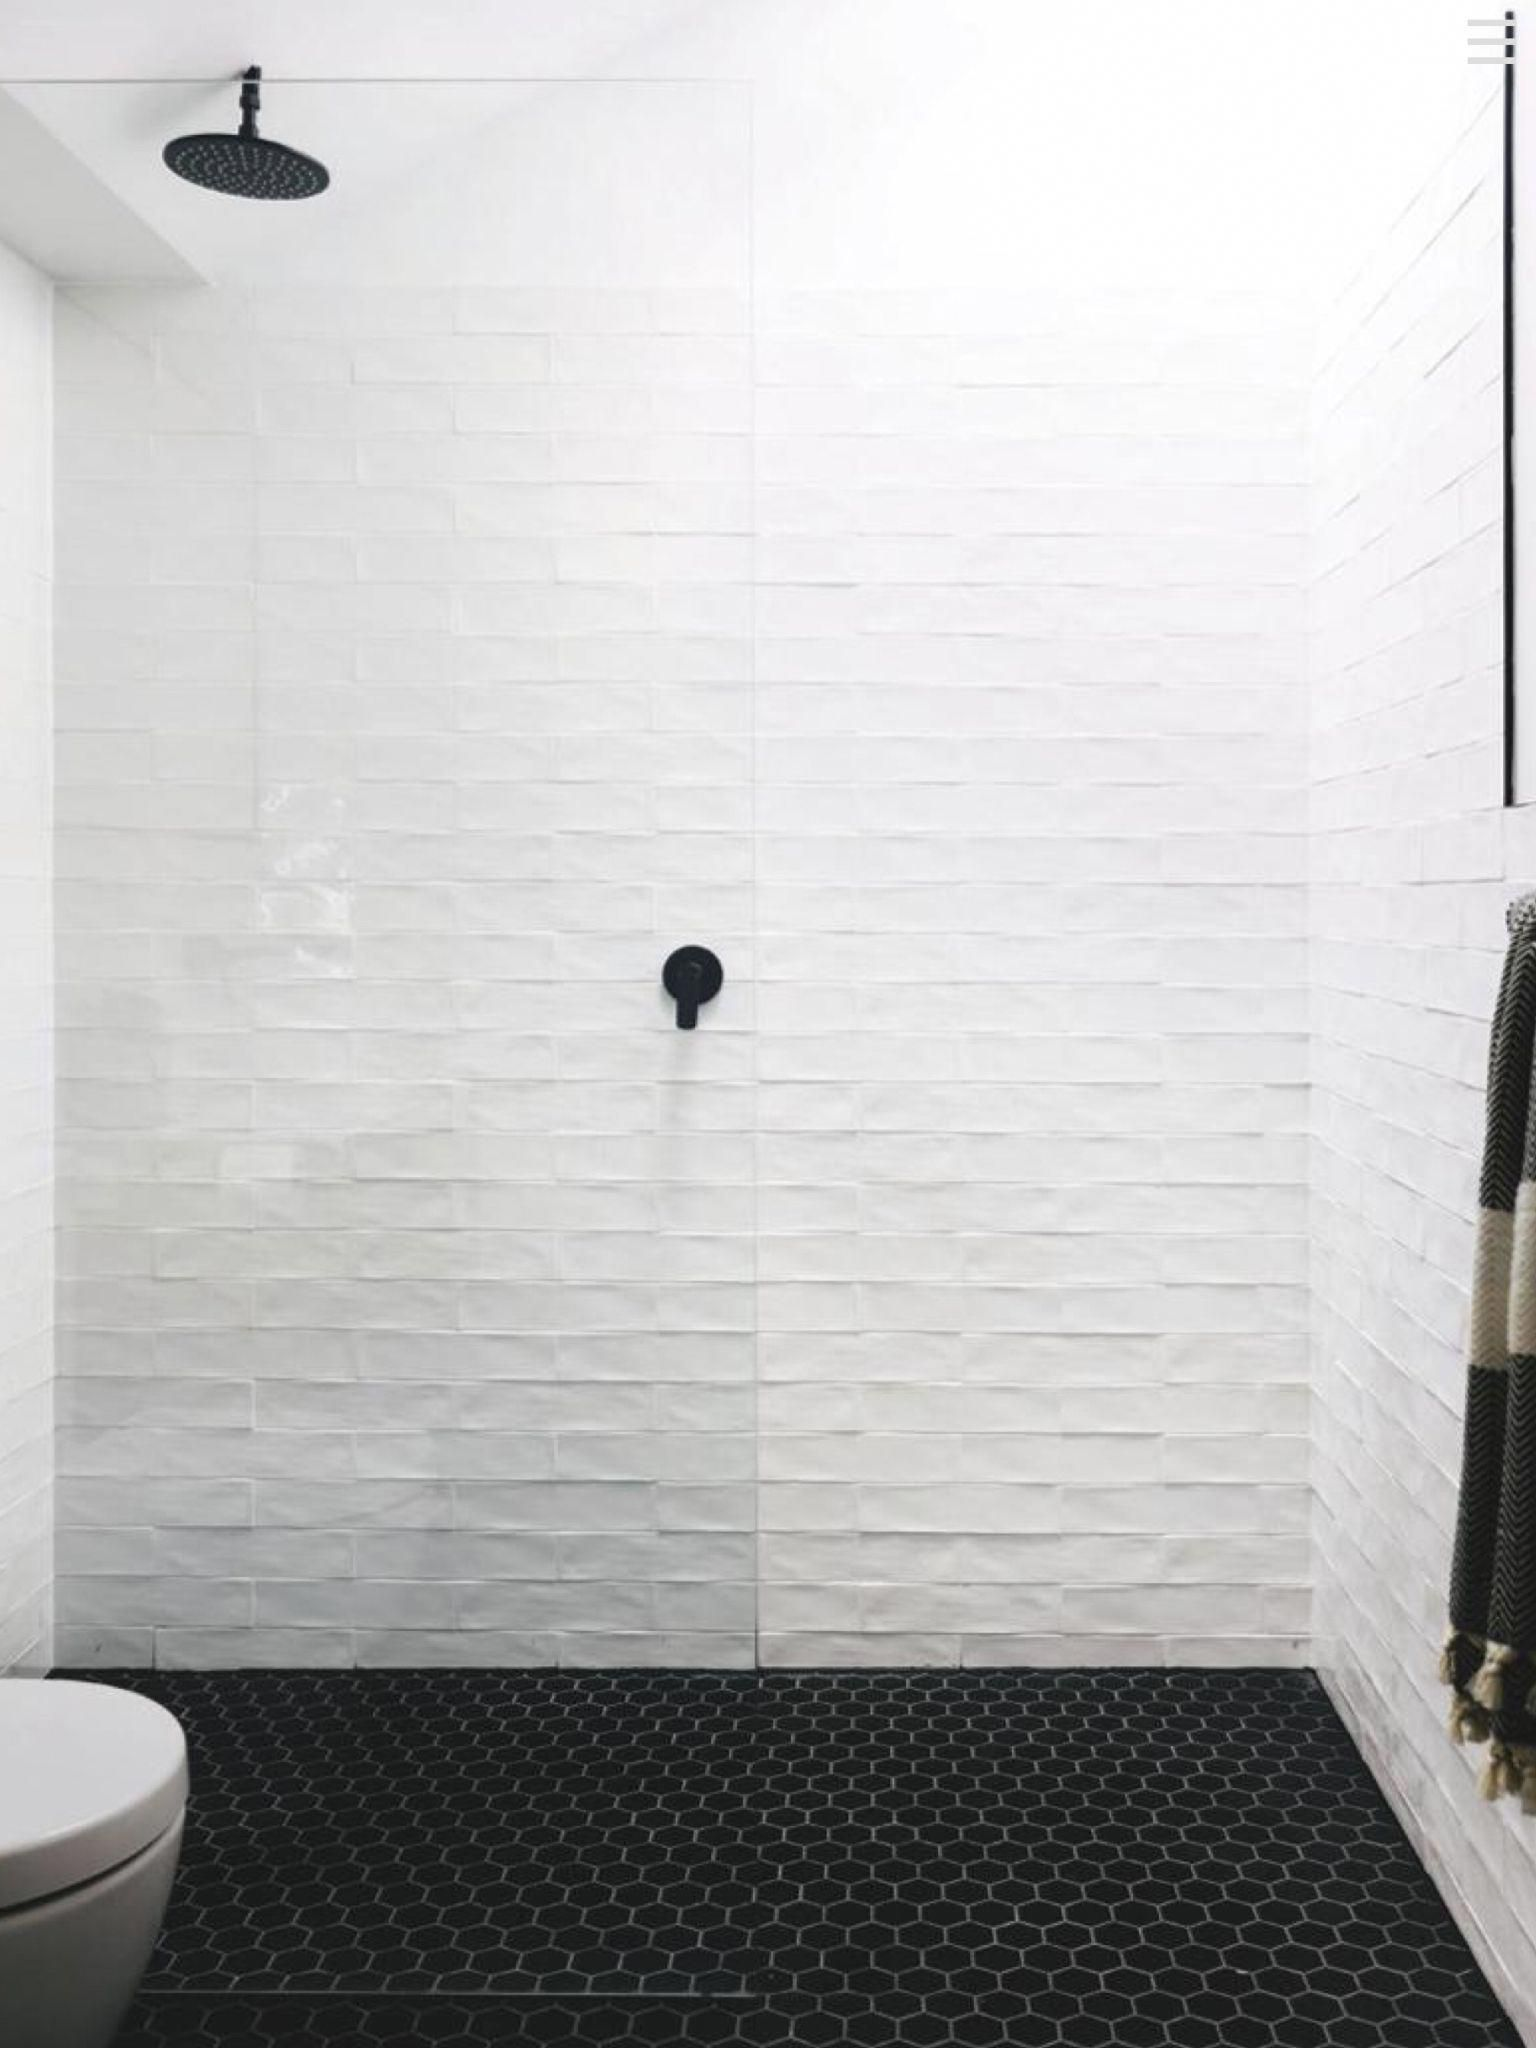 Bat Wall Covering Ideas Unfinished Design Interior 20190315 Wet Room Bathroom